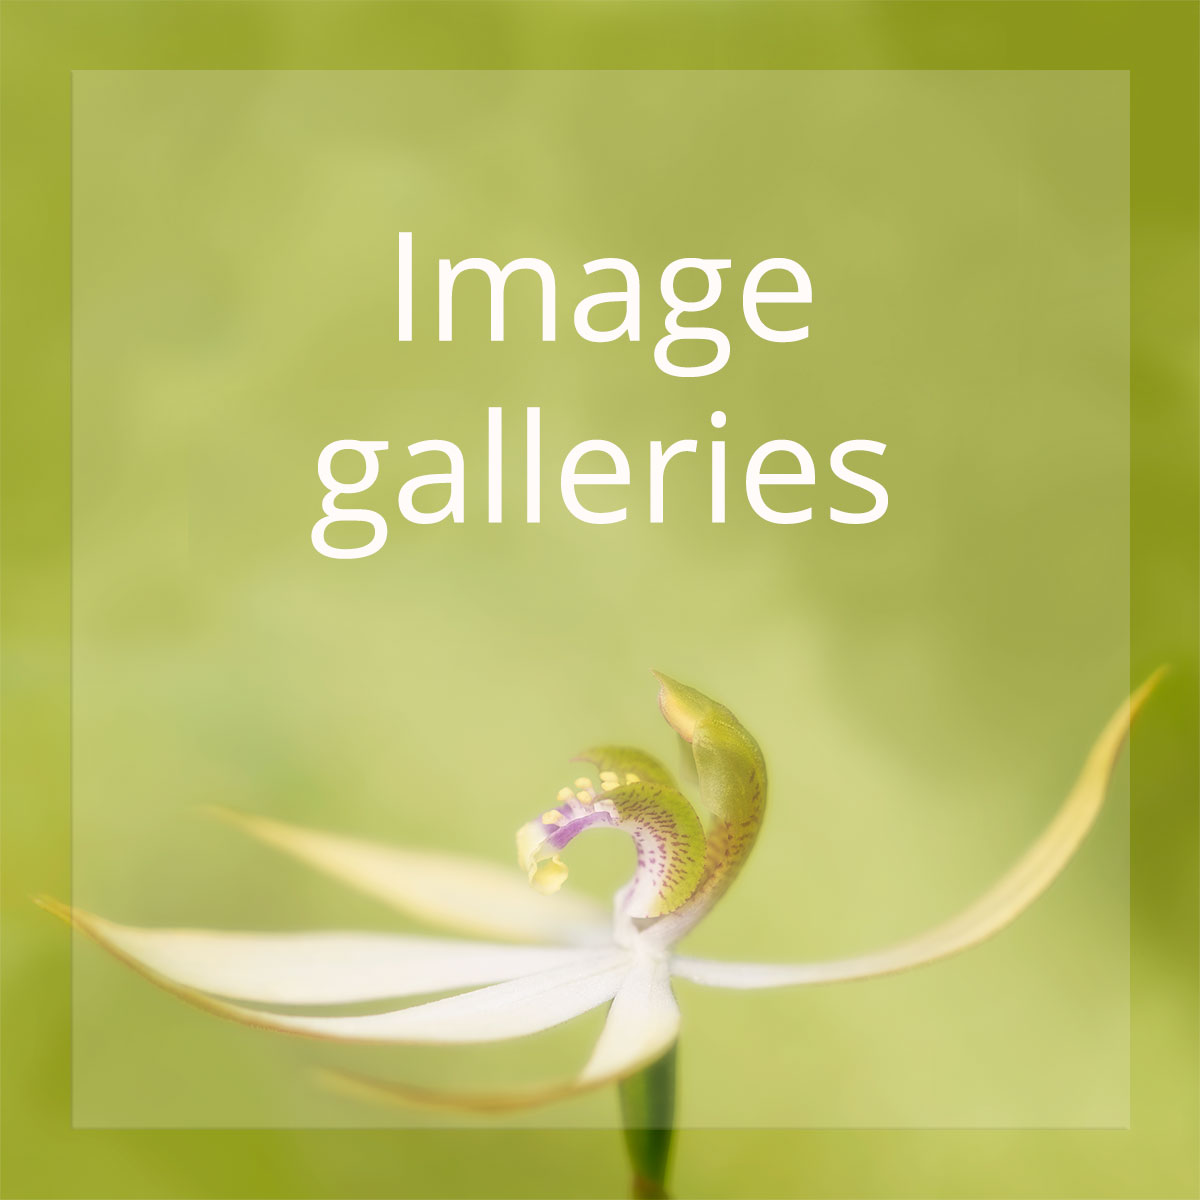 Visit the Beasts & Blossoms image galleries